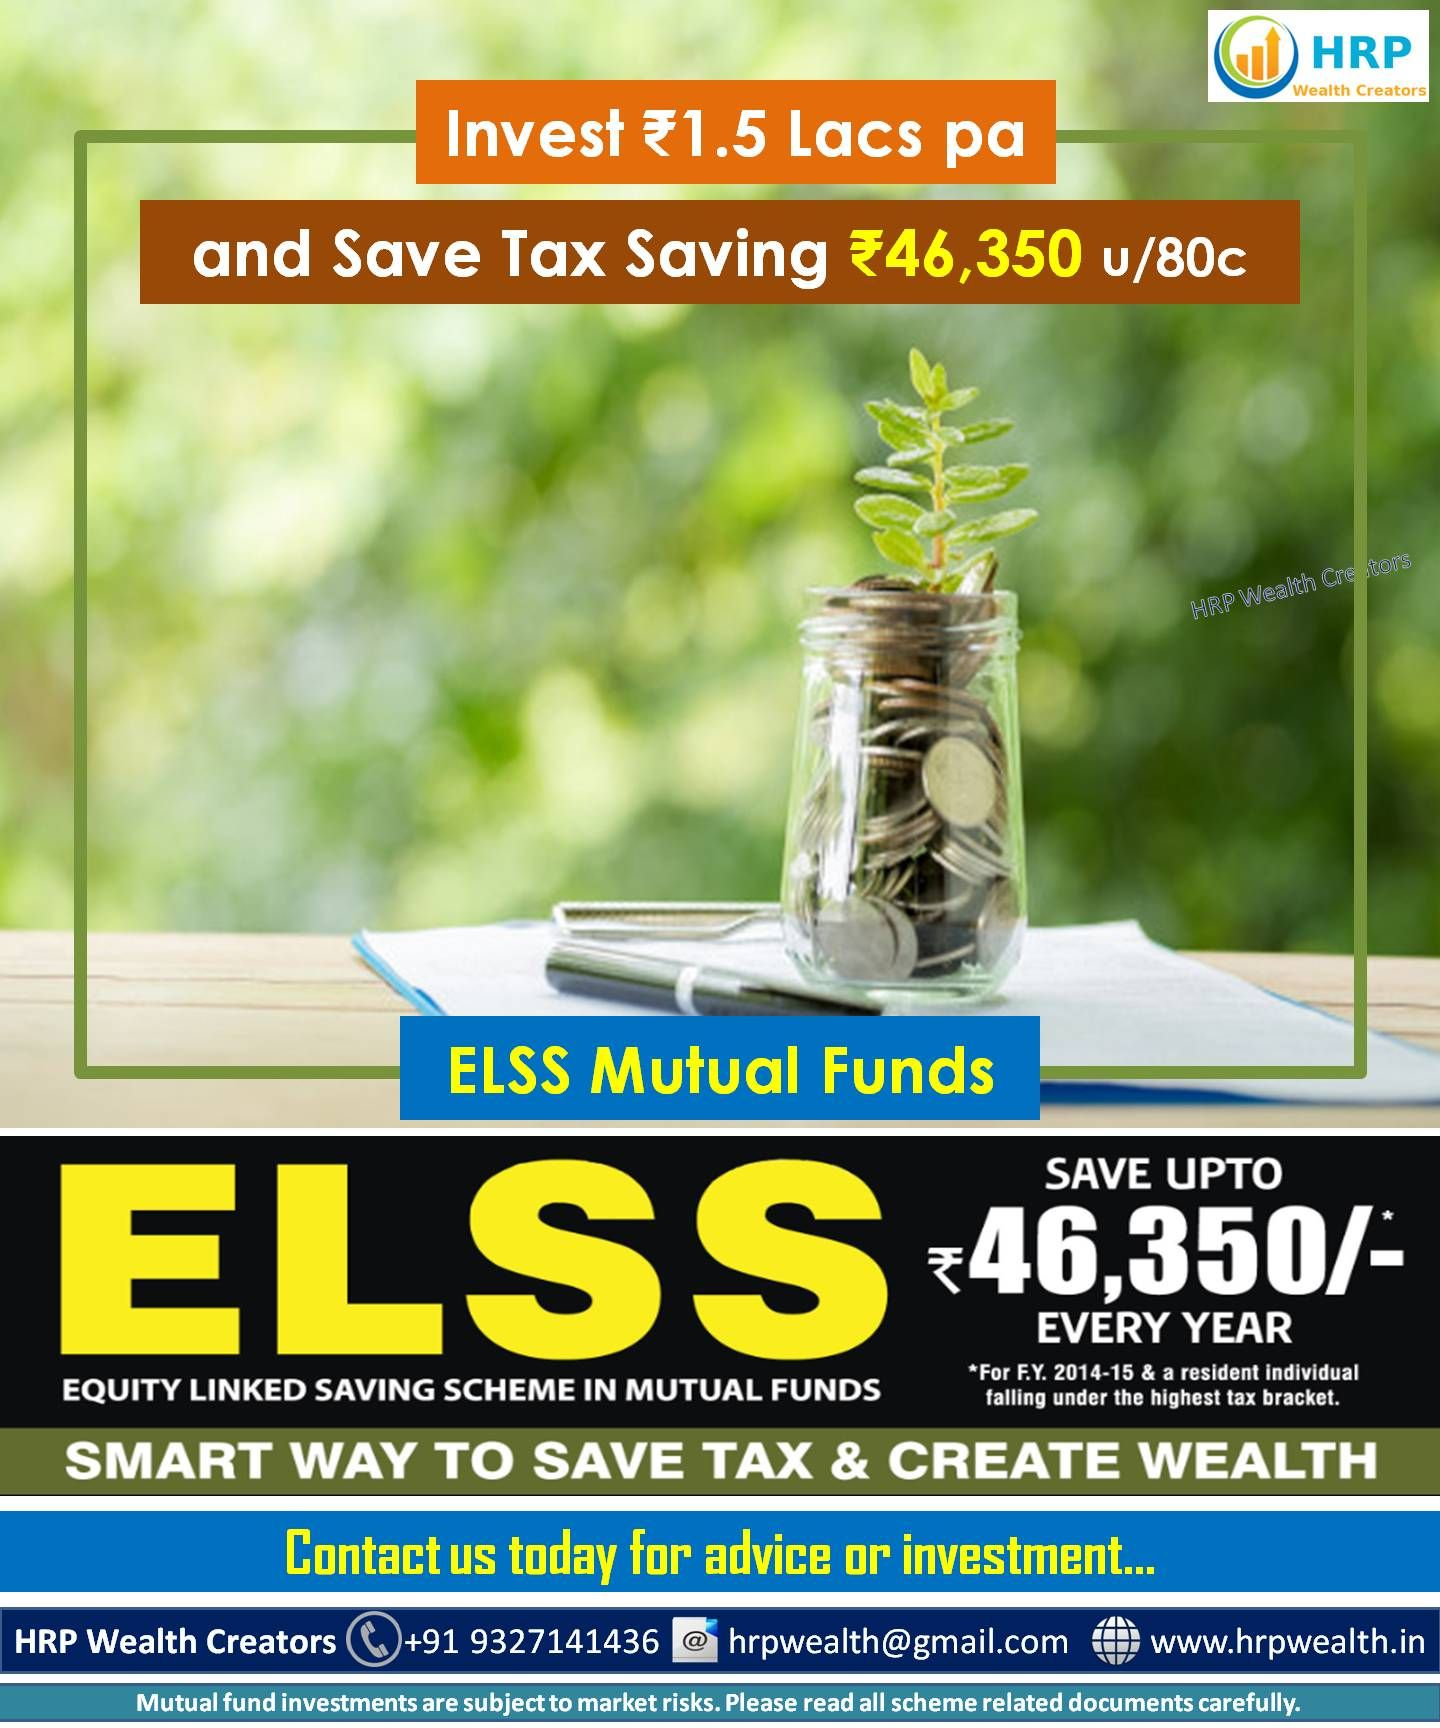 Elss Mutual Funds With A Statutory Lock In Of 3 Years And Tax